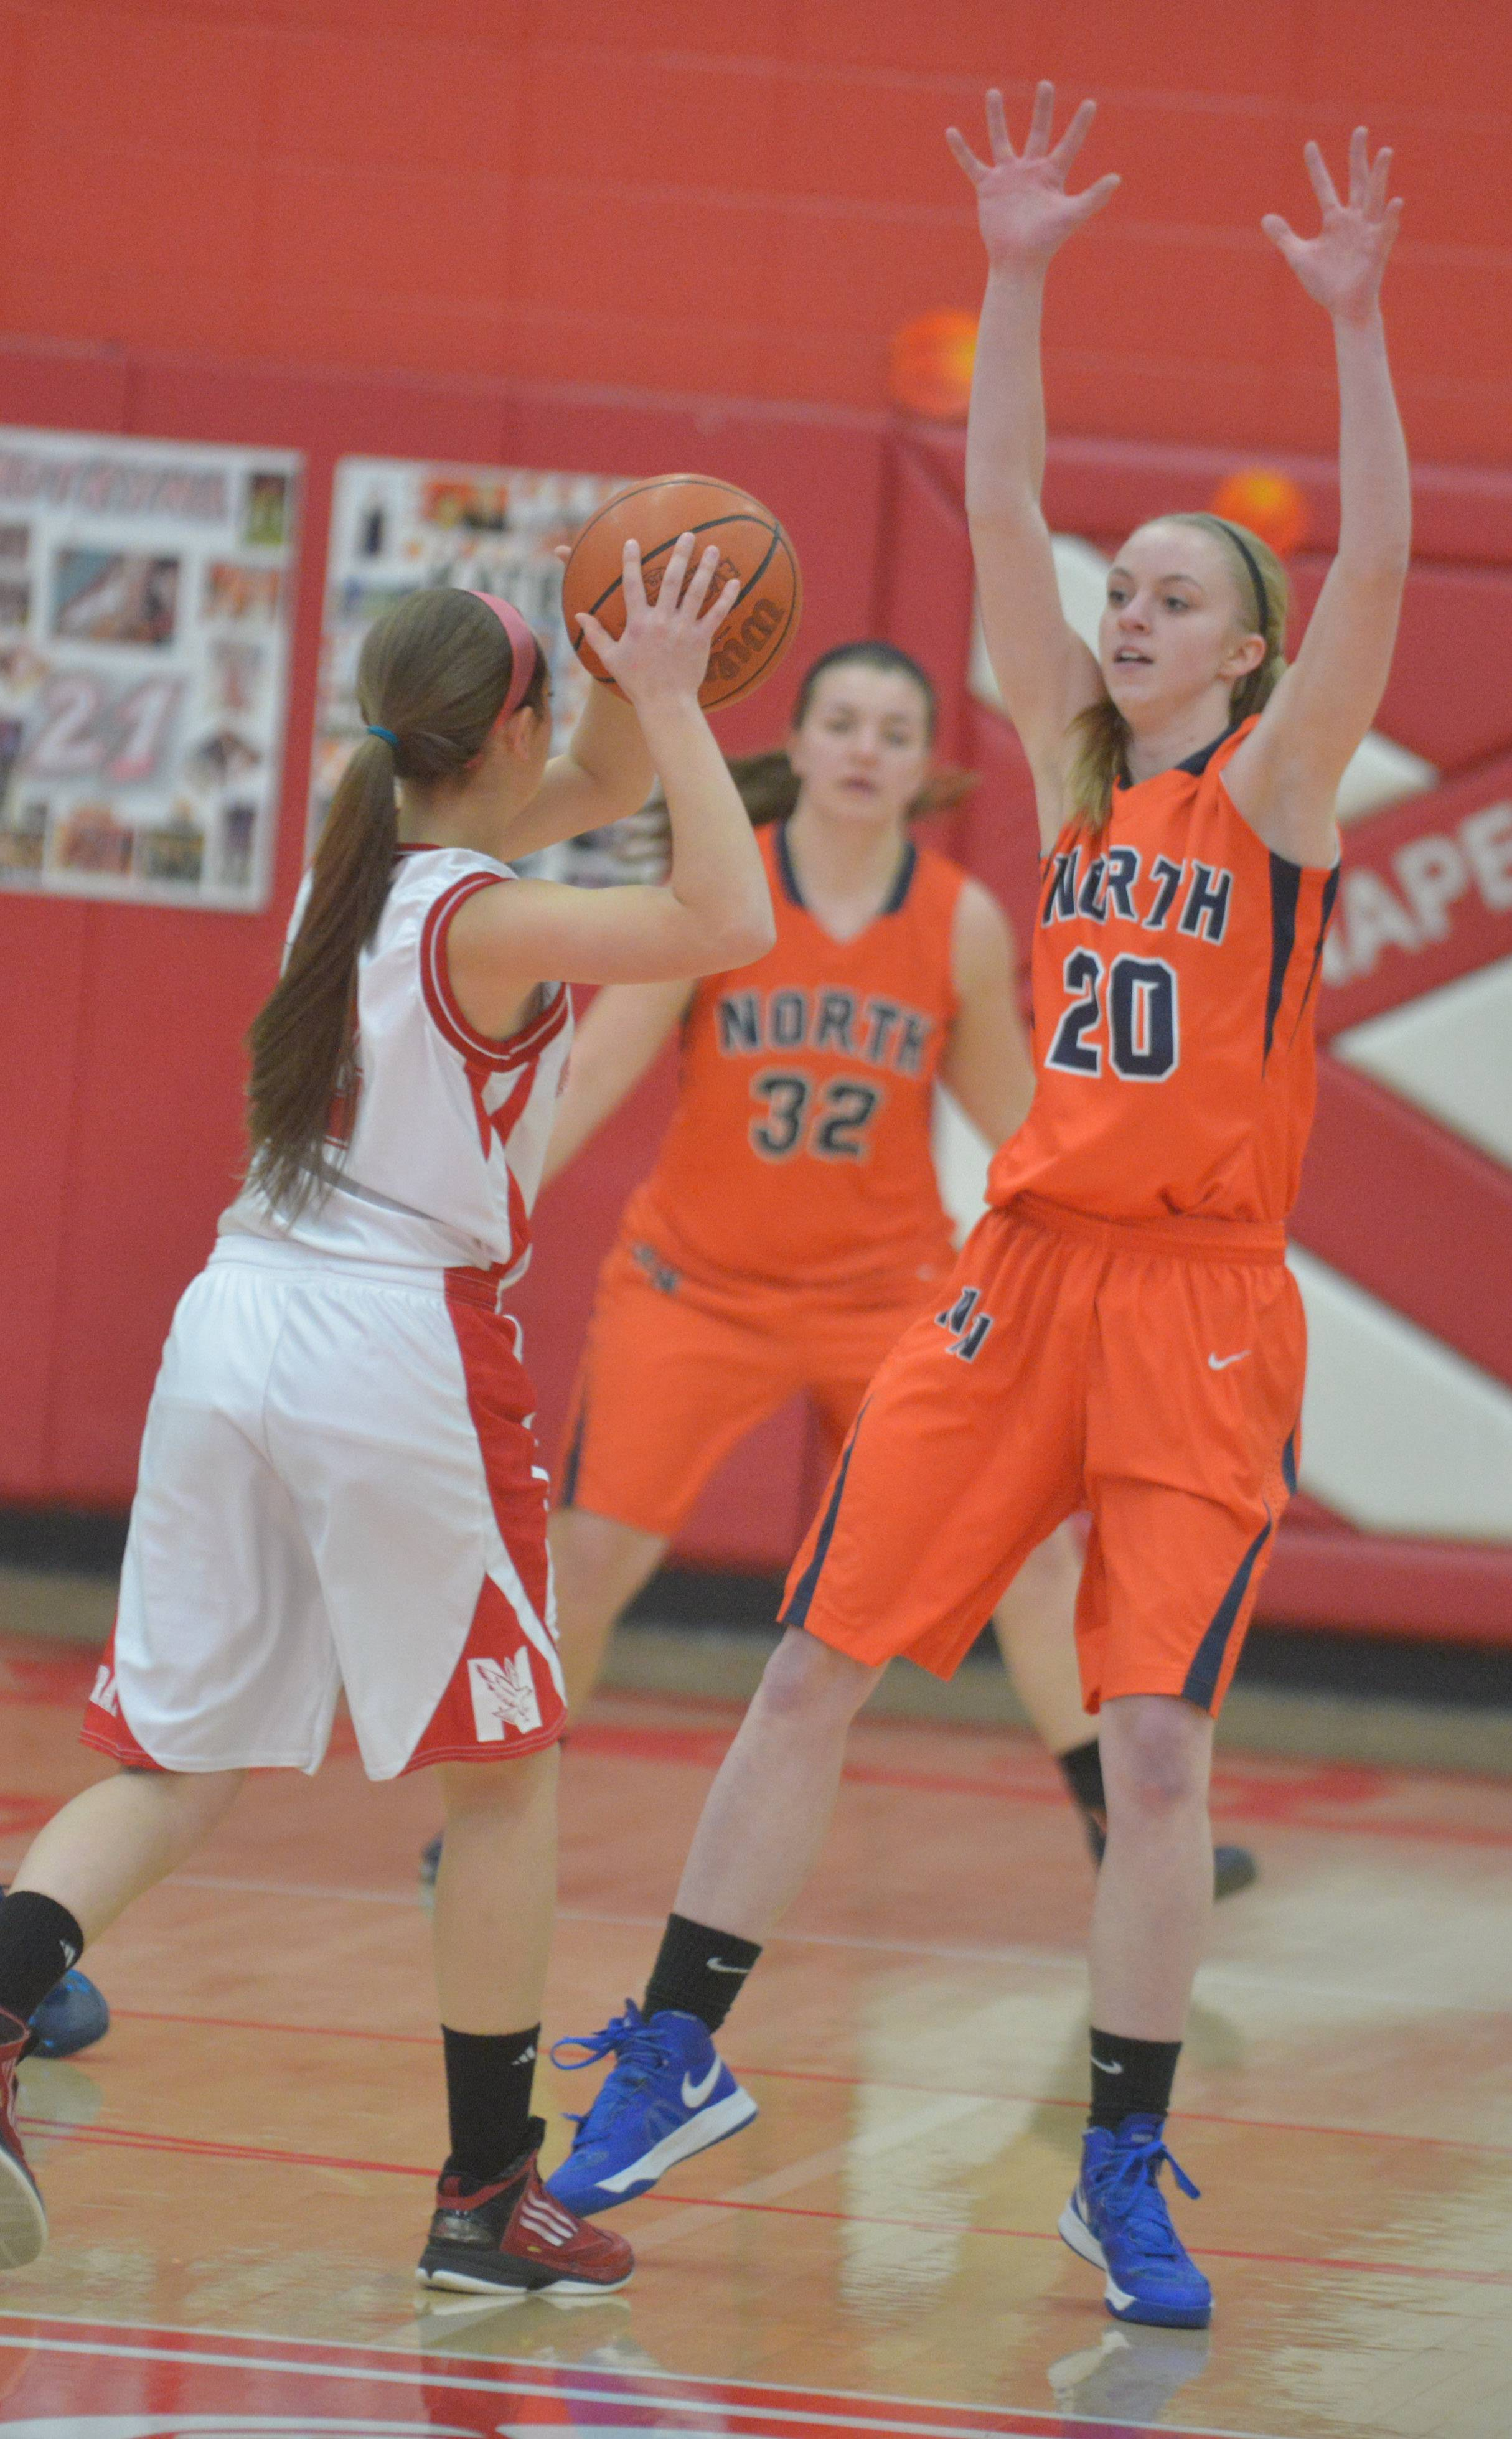 Photos from the Naperville North at Naperville Central girls basketball game Thursday, Feb. 13.